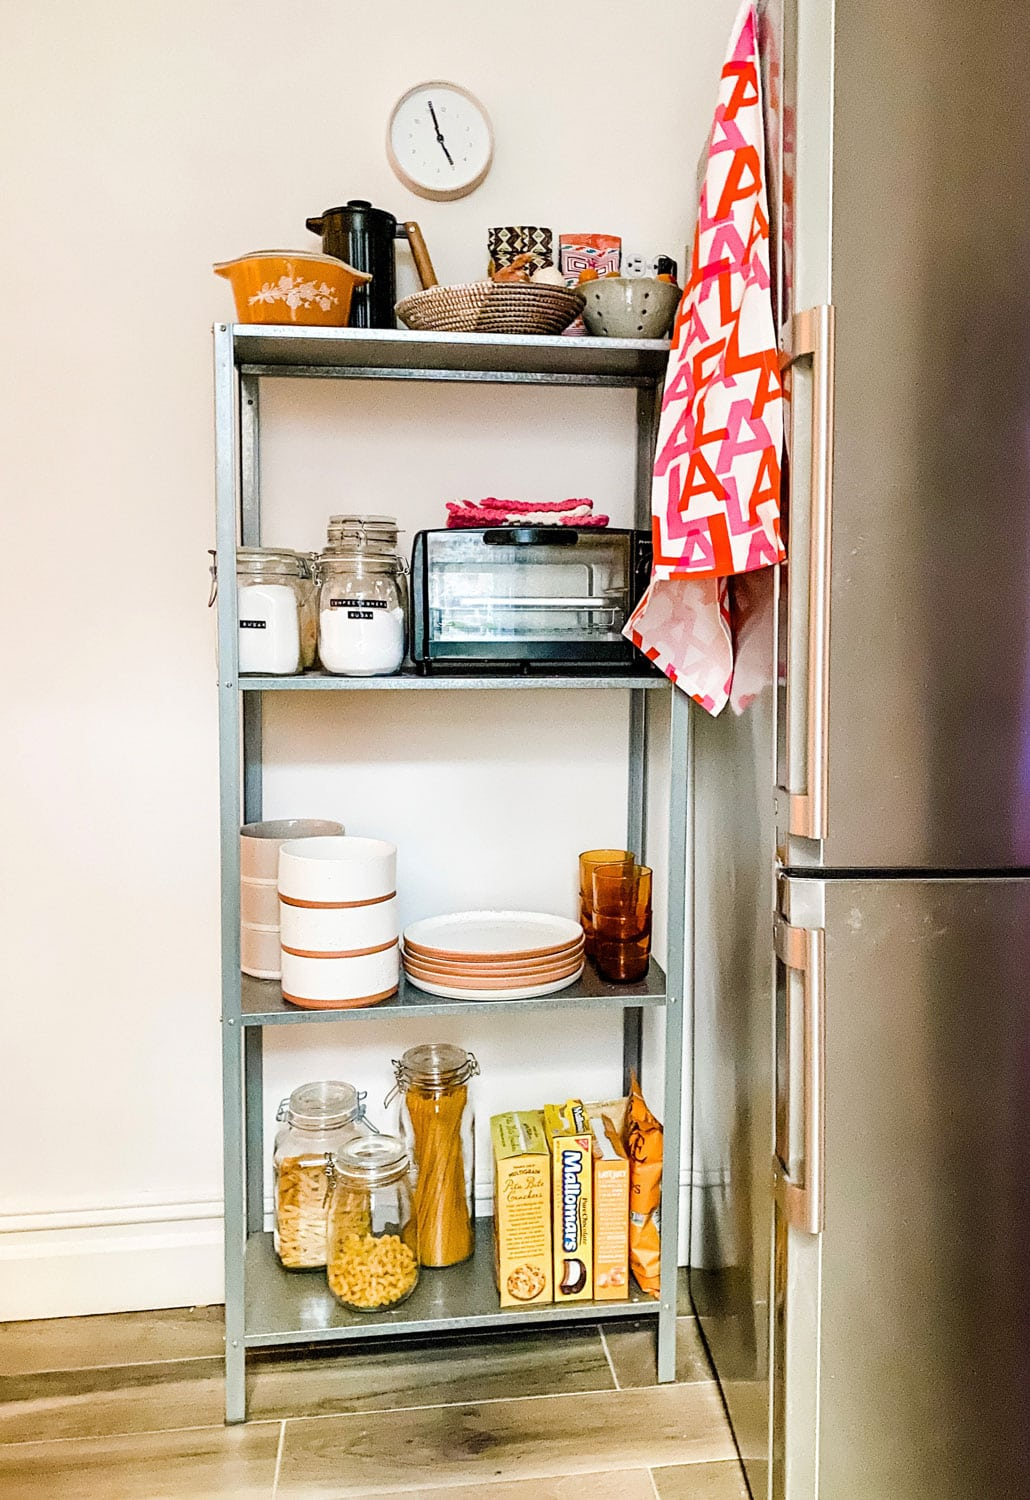 small open galvanized shelf in kitchen with dishes, toaster oven